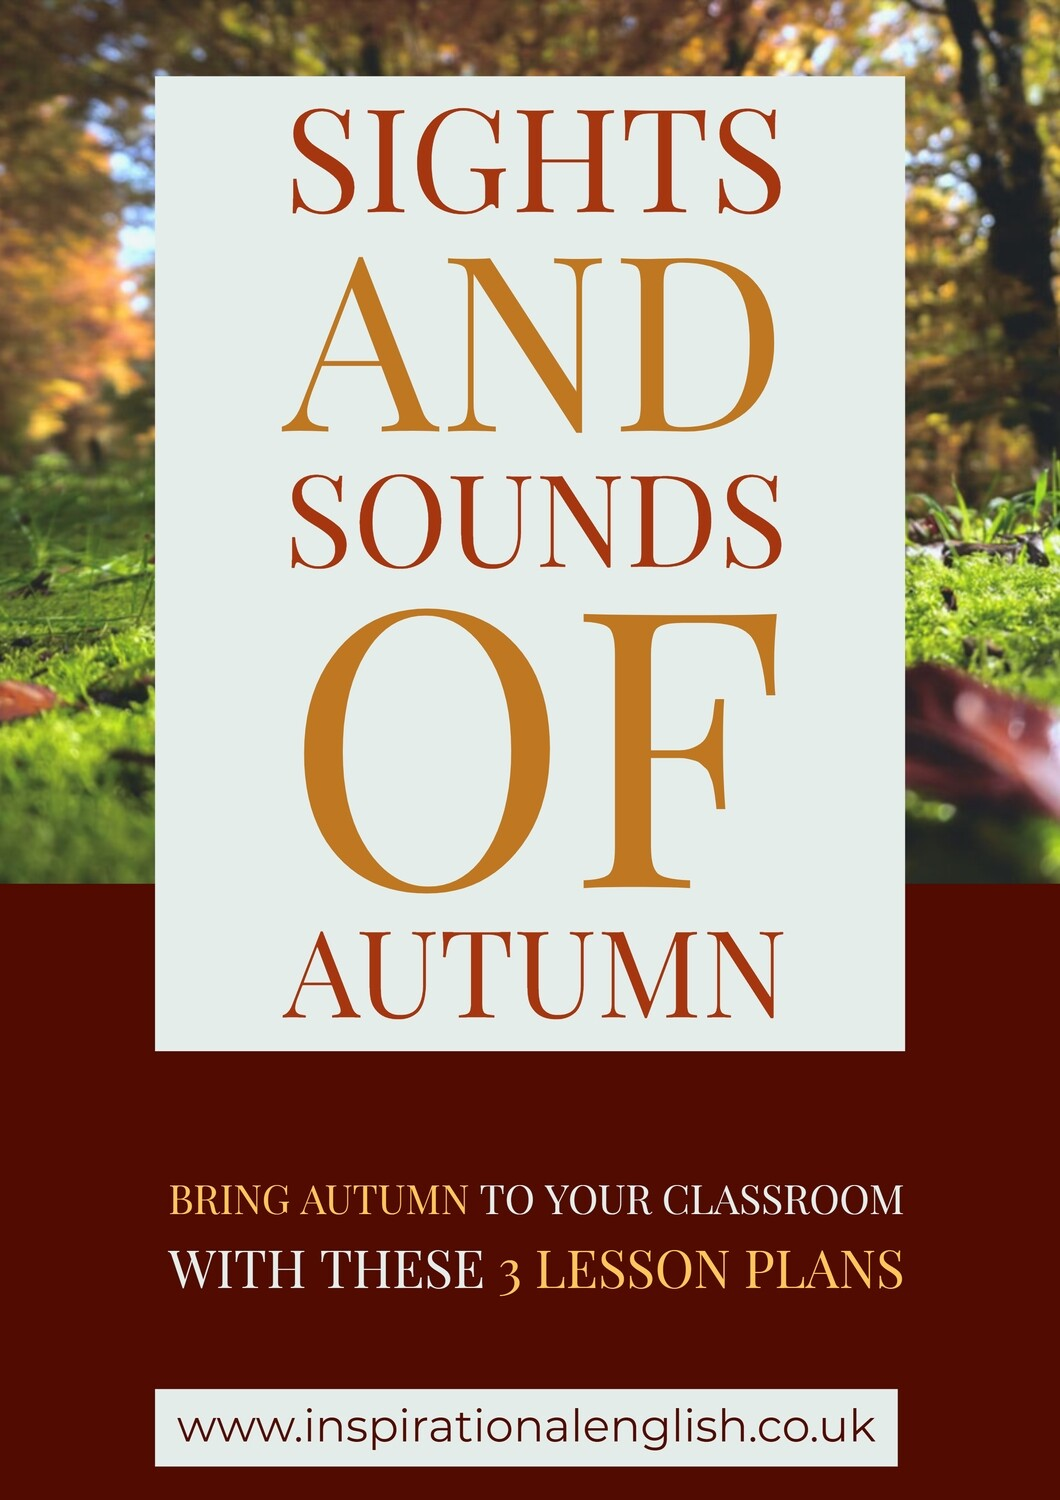 Sights and Sounds of Autumn